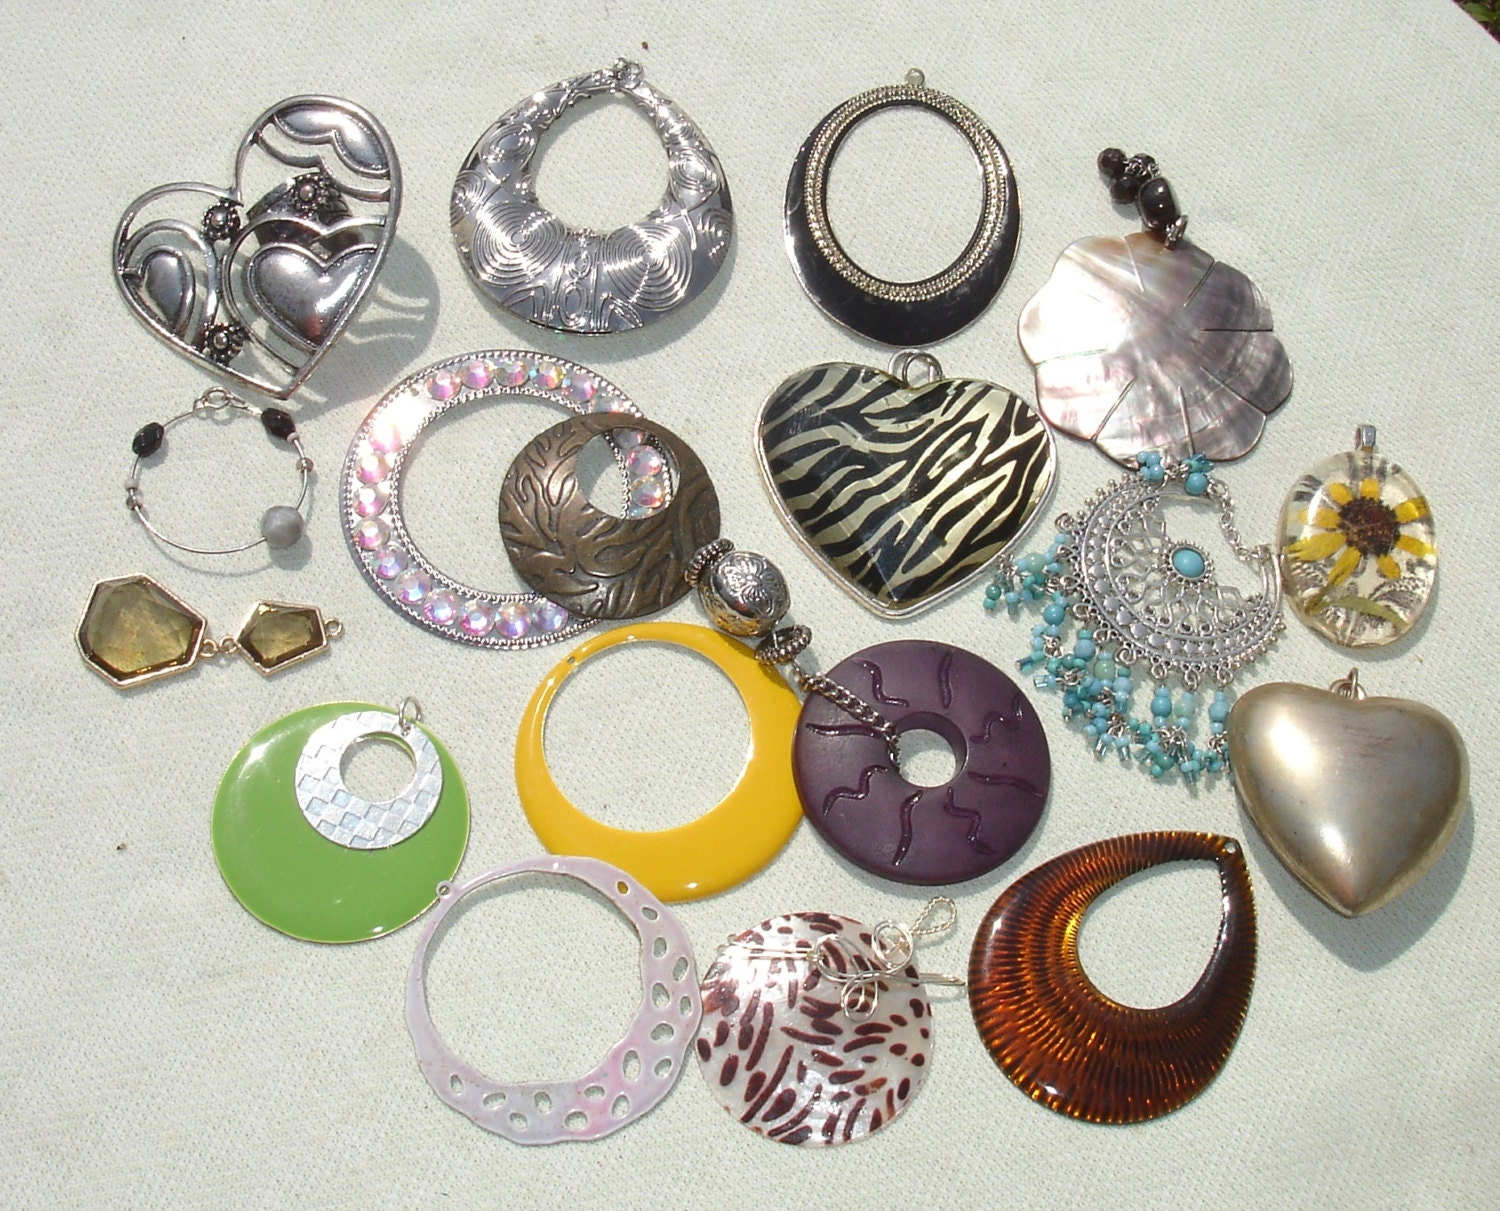 Destash charms jewelry making supplies 18 pcs for Earring supplies for jewelry making